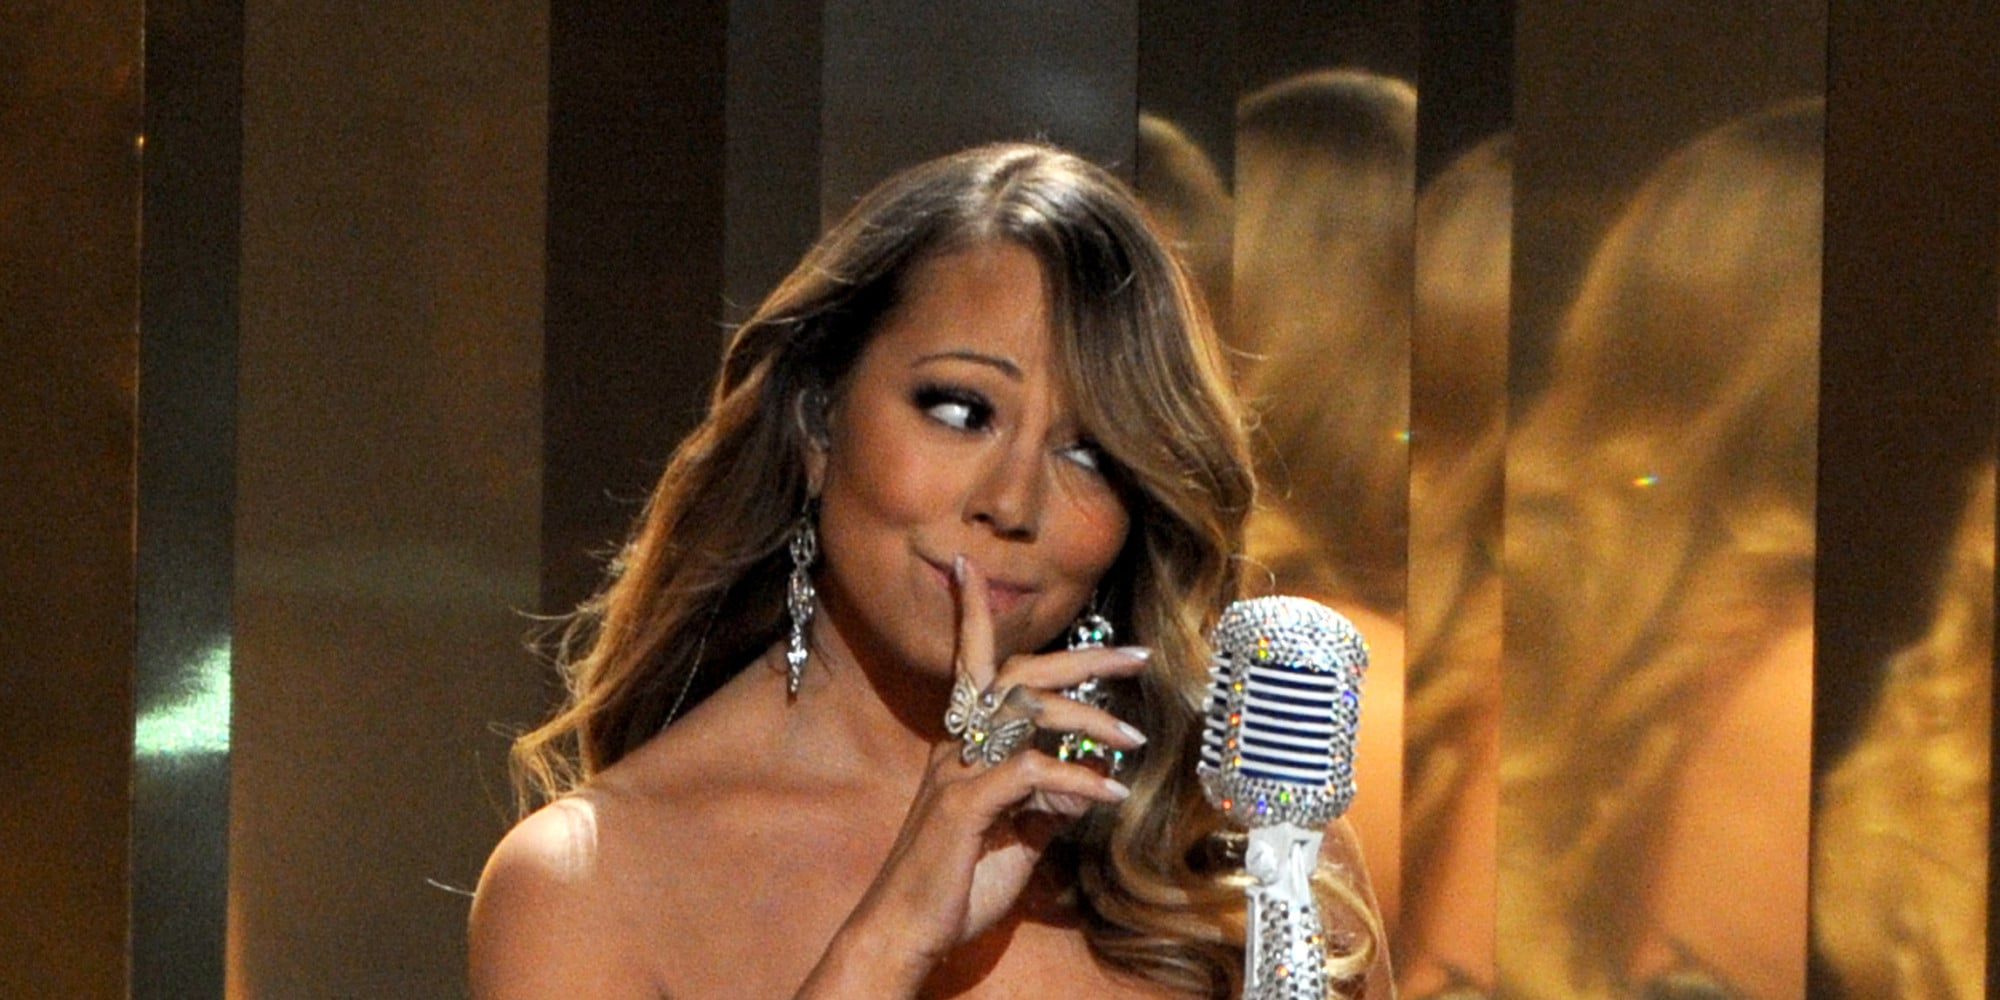 Mariah Carey performs onstage at the BET Awards at the Nokia Theatre on Sunday, June 30, 2013, in Los Angeles. (Photo by Frank Micelotta/Invision/AP)